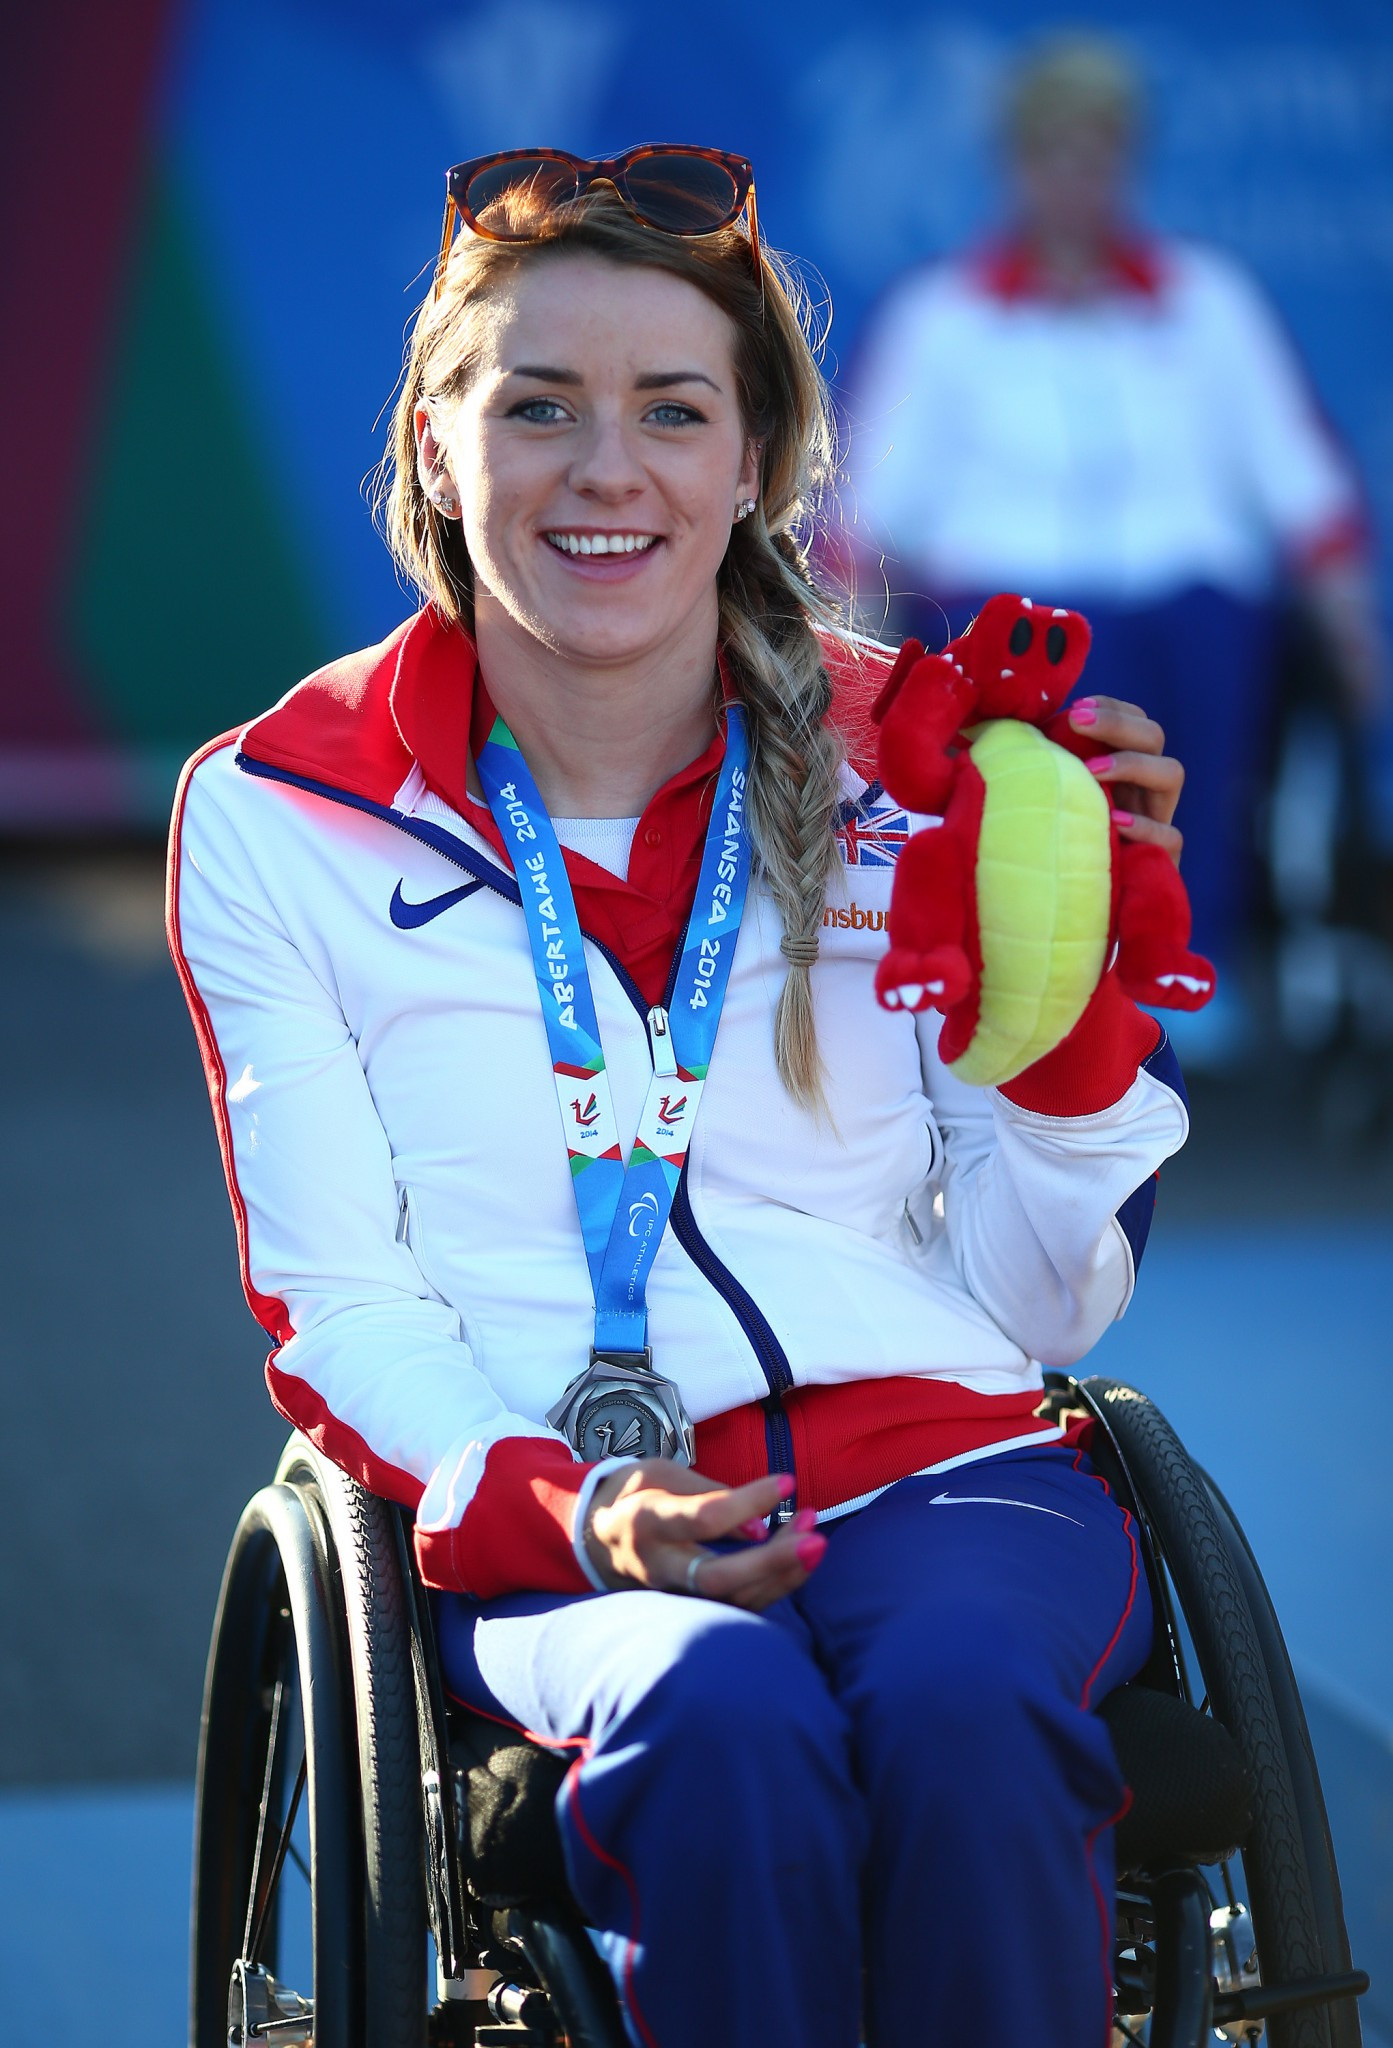 British Paralympic champion Pearson switches to cycling for Rio 2016